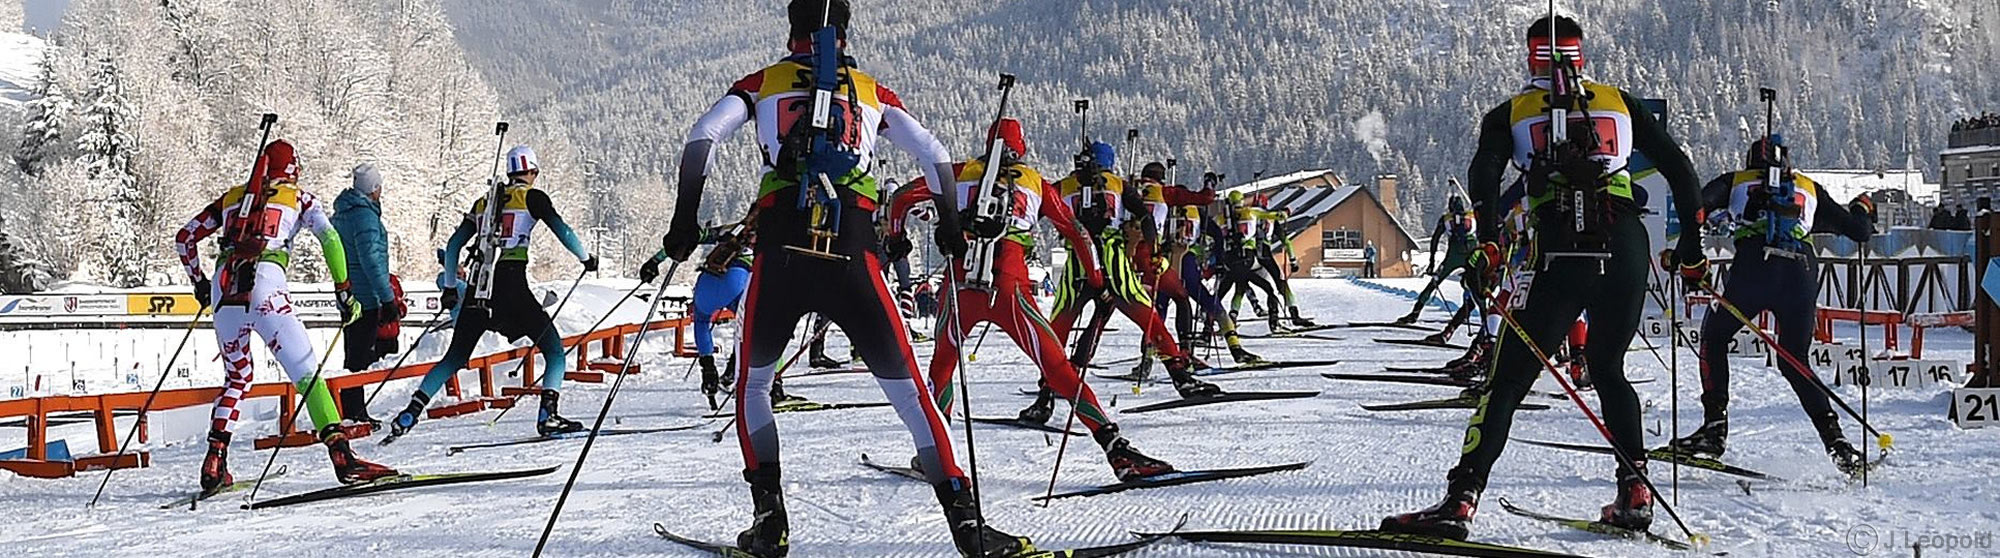 alaska-biathlon-races